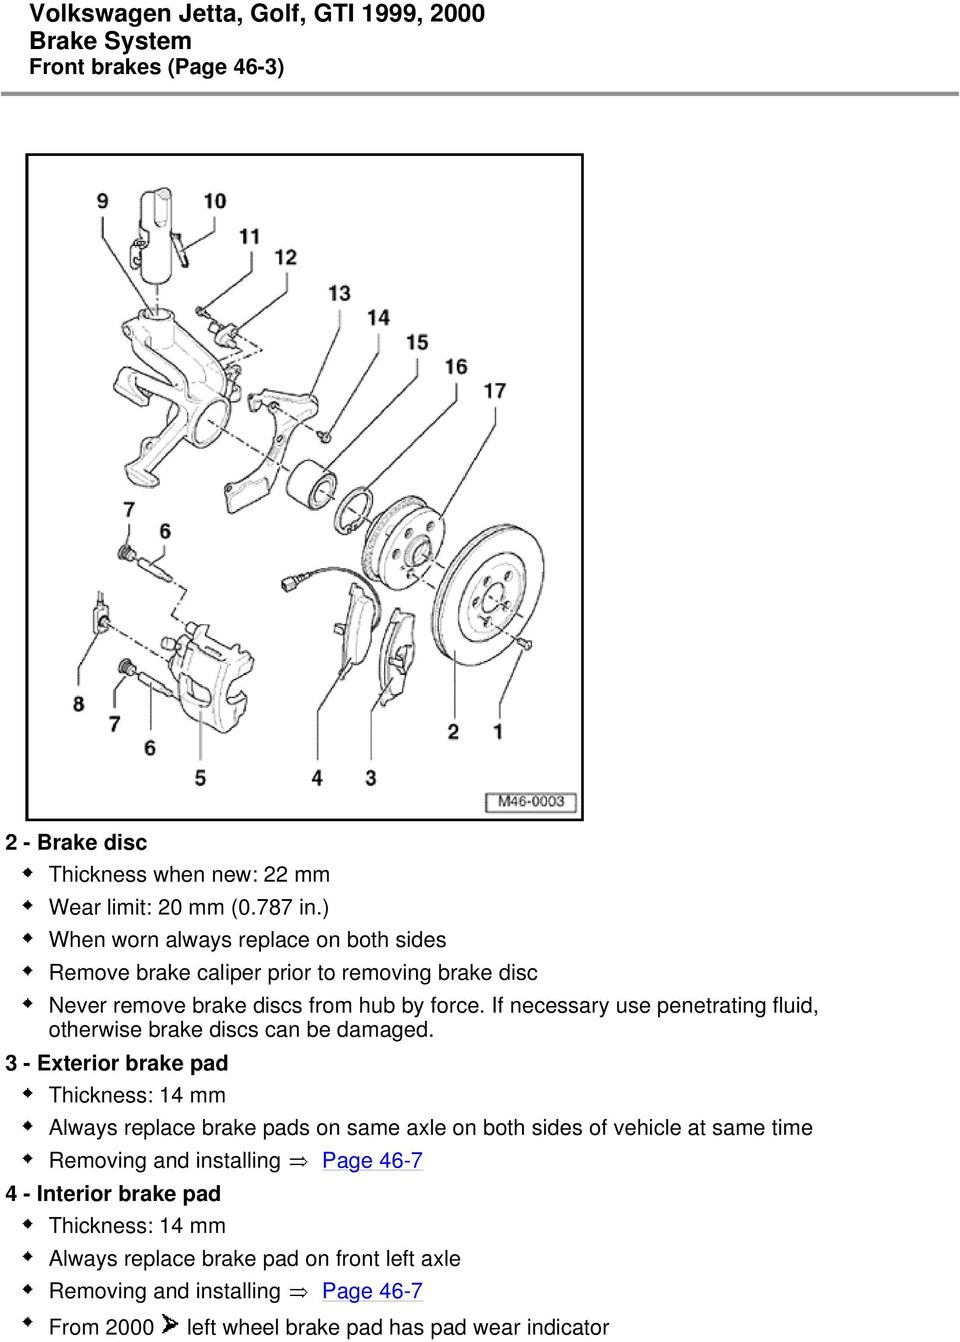 If necessary use penetrating fluid, otherwise brake discs can be damaged.